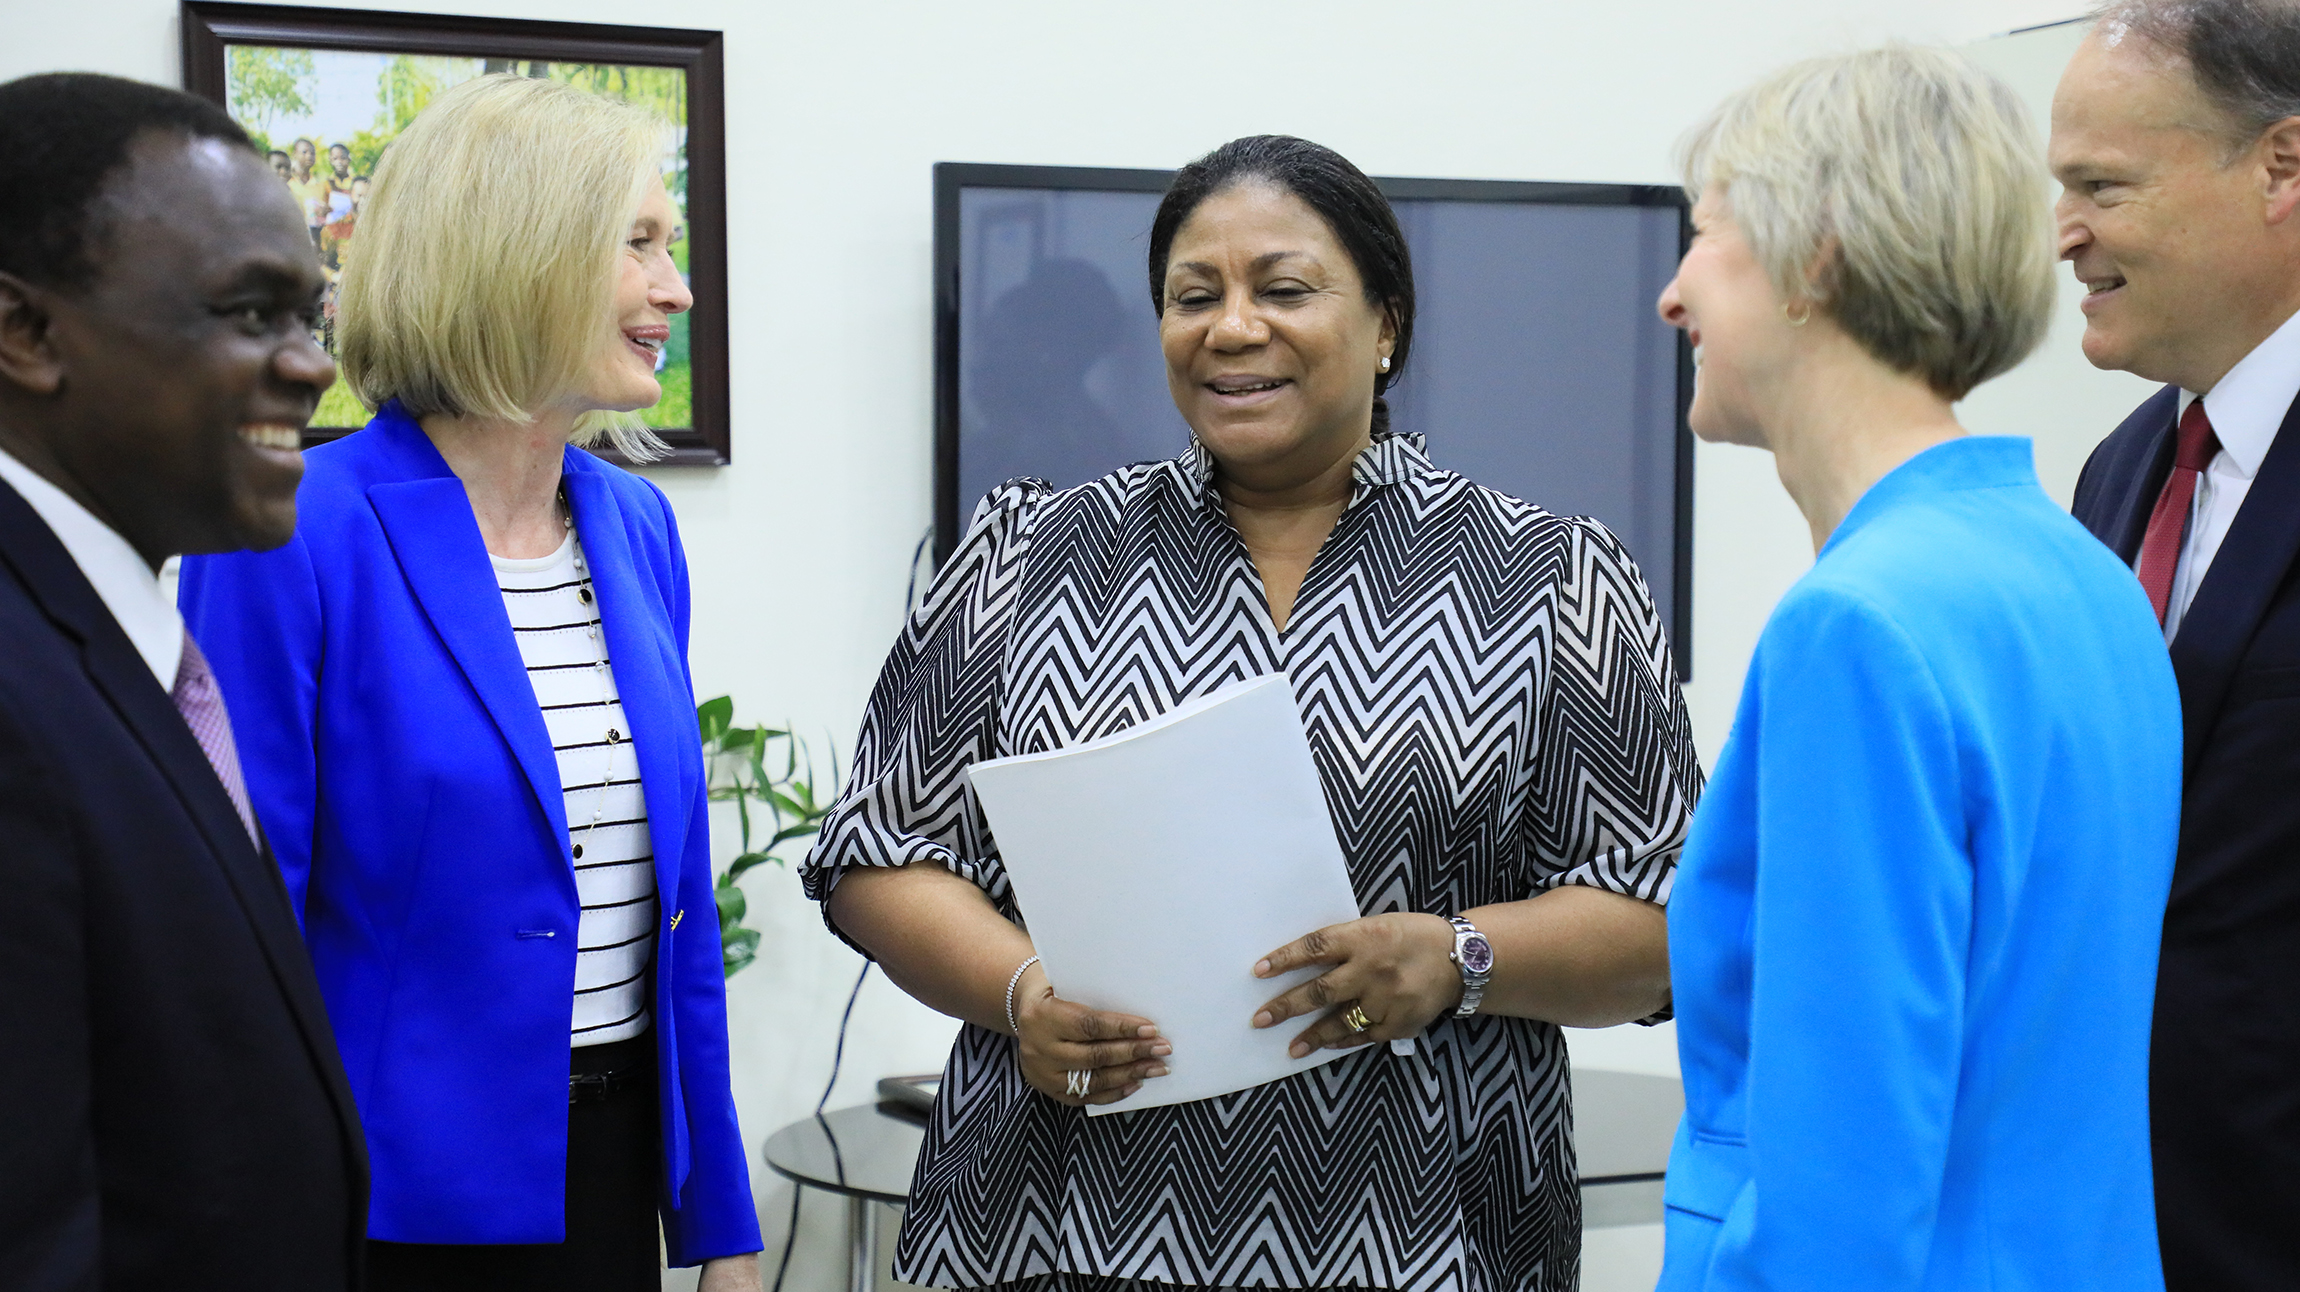 Sister Jean B. Bingham, right, and Sister Bonnie H. Cordon, left, visit Rebecca Naa Okaikor Akufo-Addo, the first lady of the Republic of Ghana, at North Ridge in Accra, Friday, March 1, 2019.